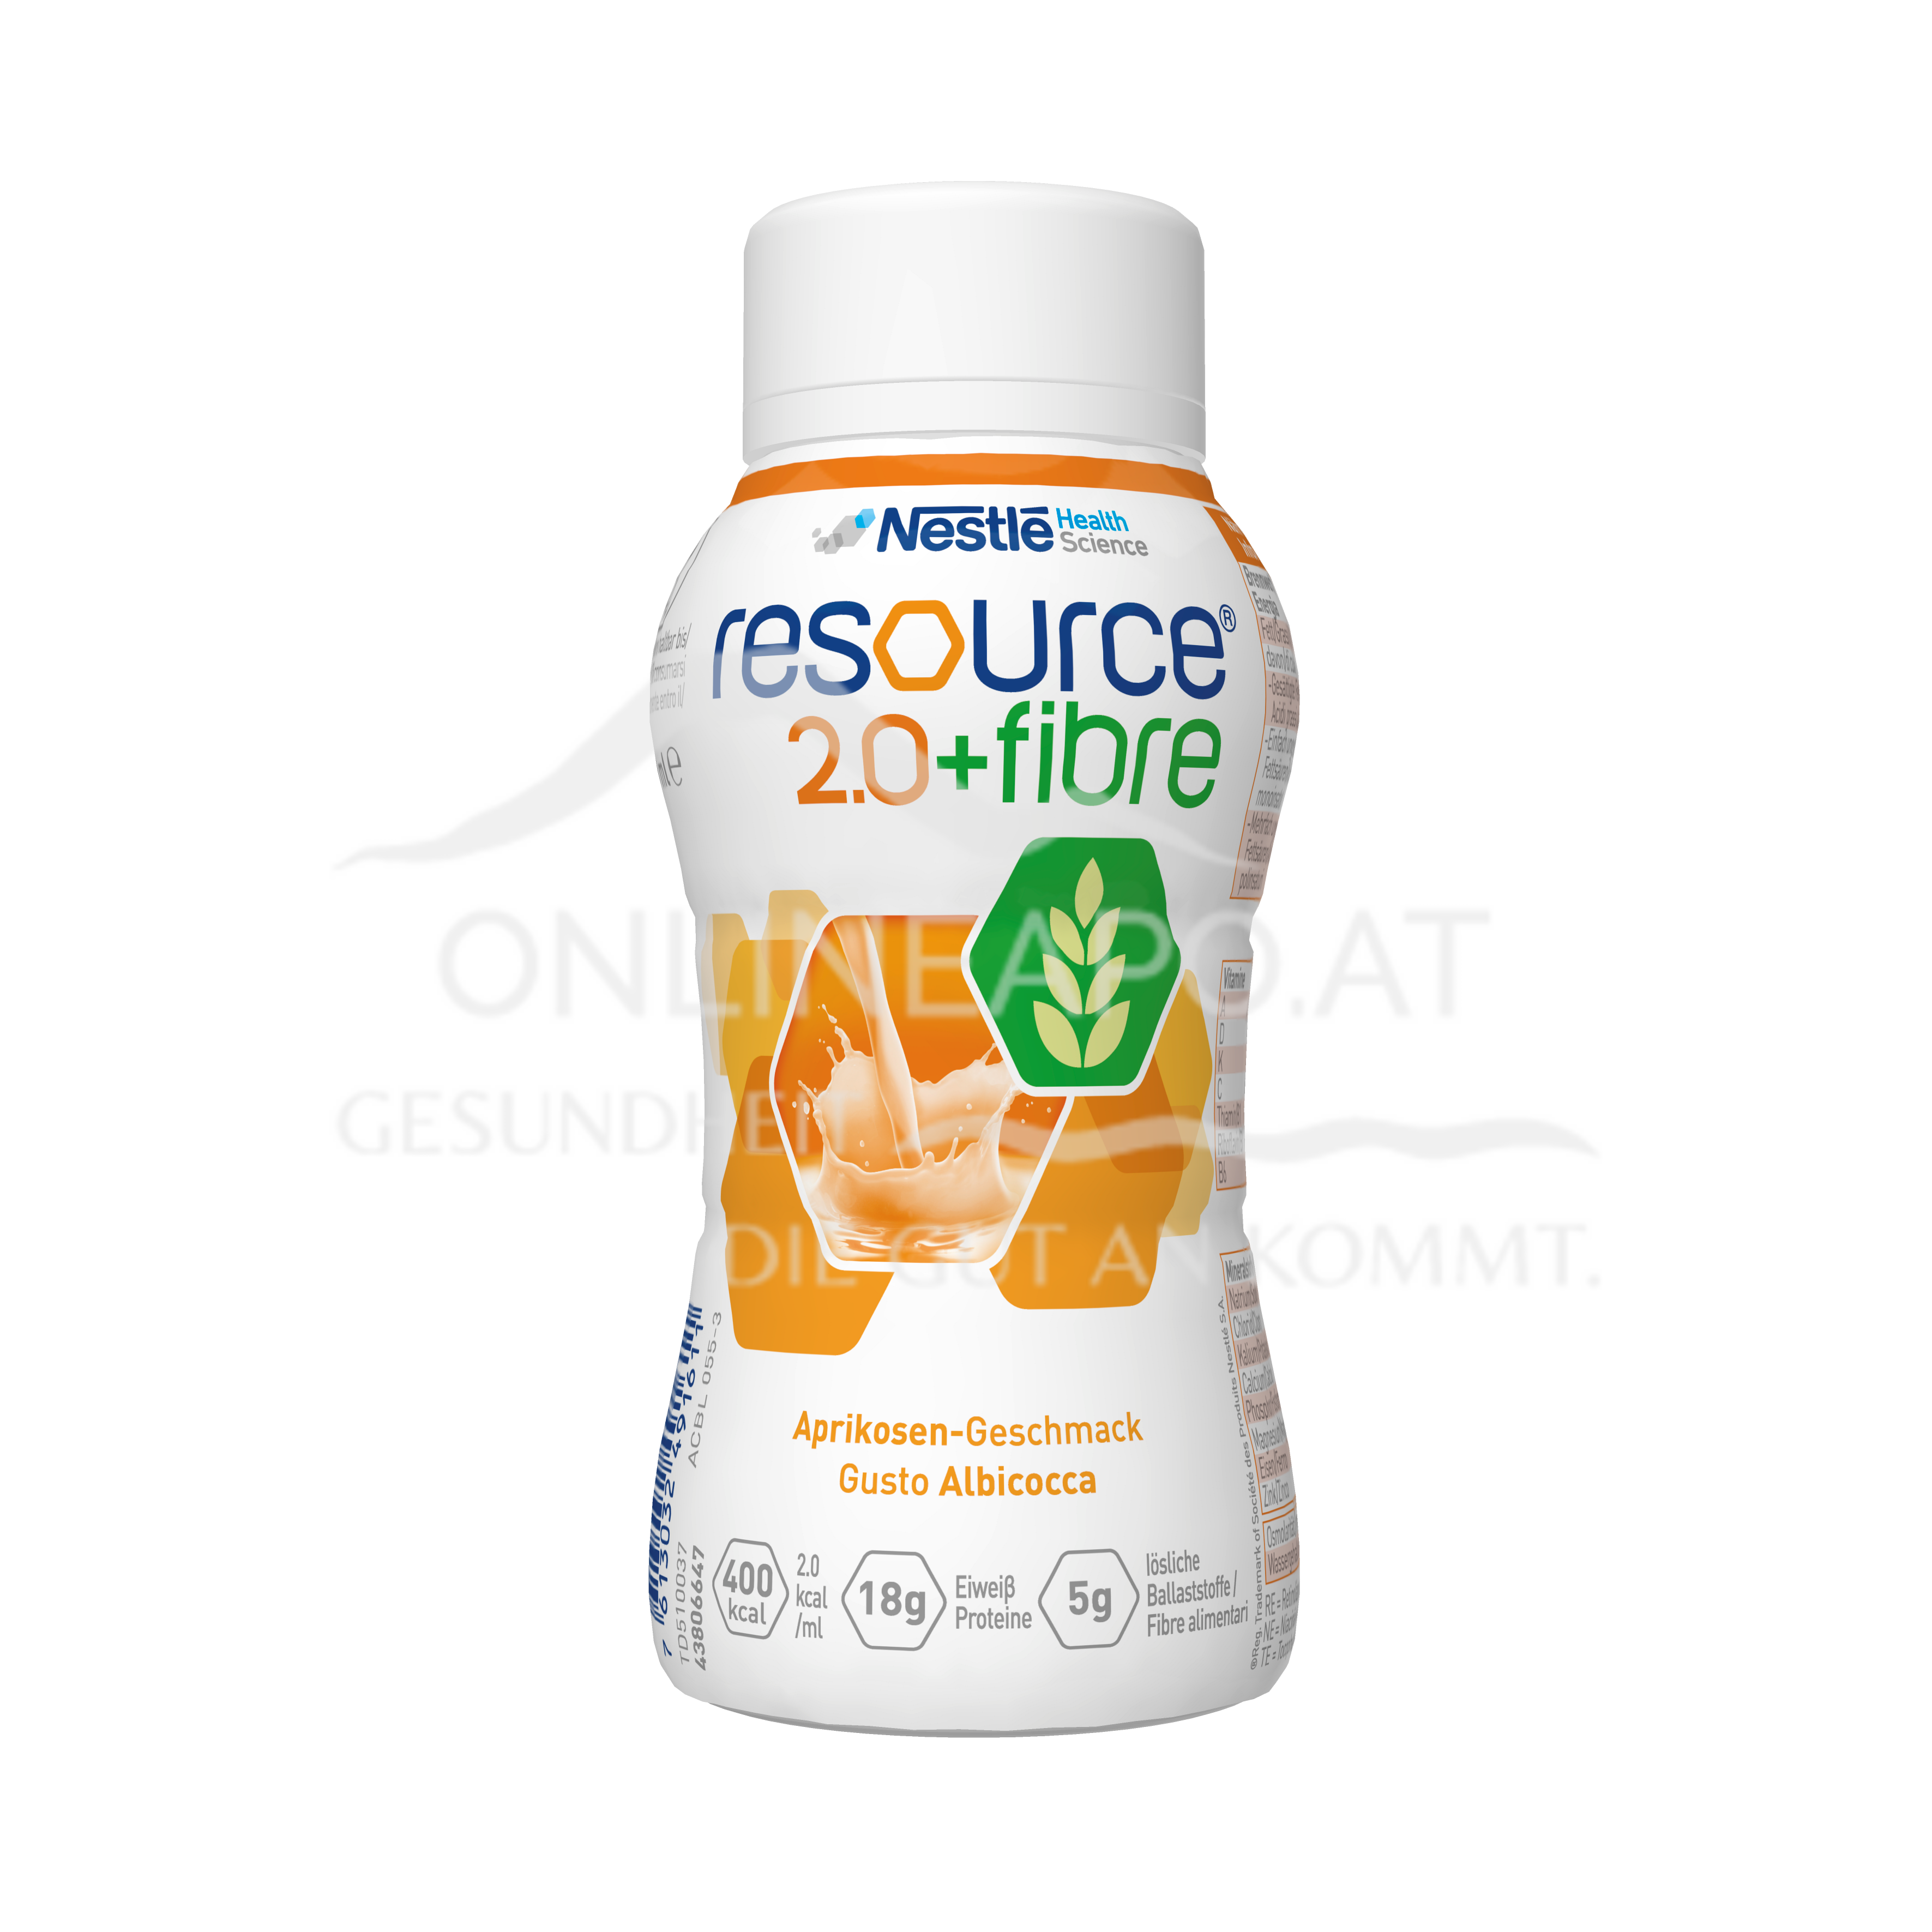 Resource® 2.0 + fibre Aprikose